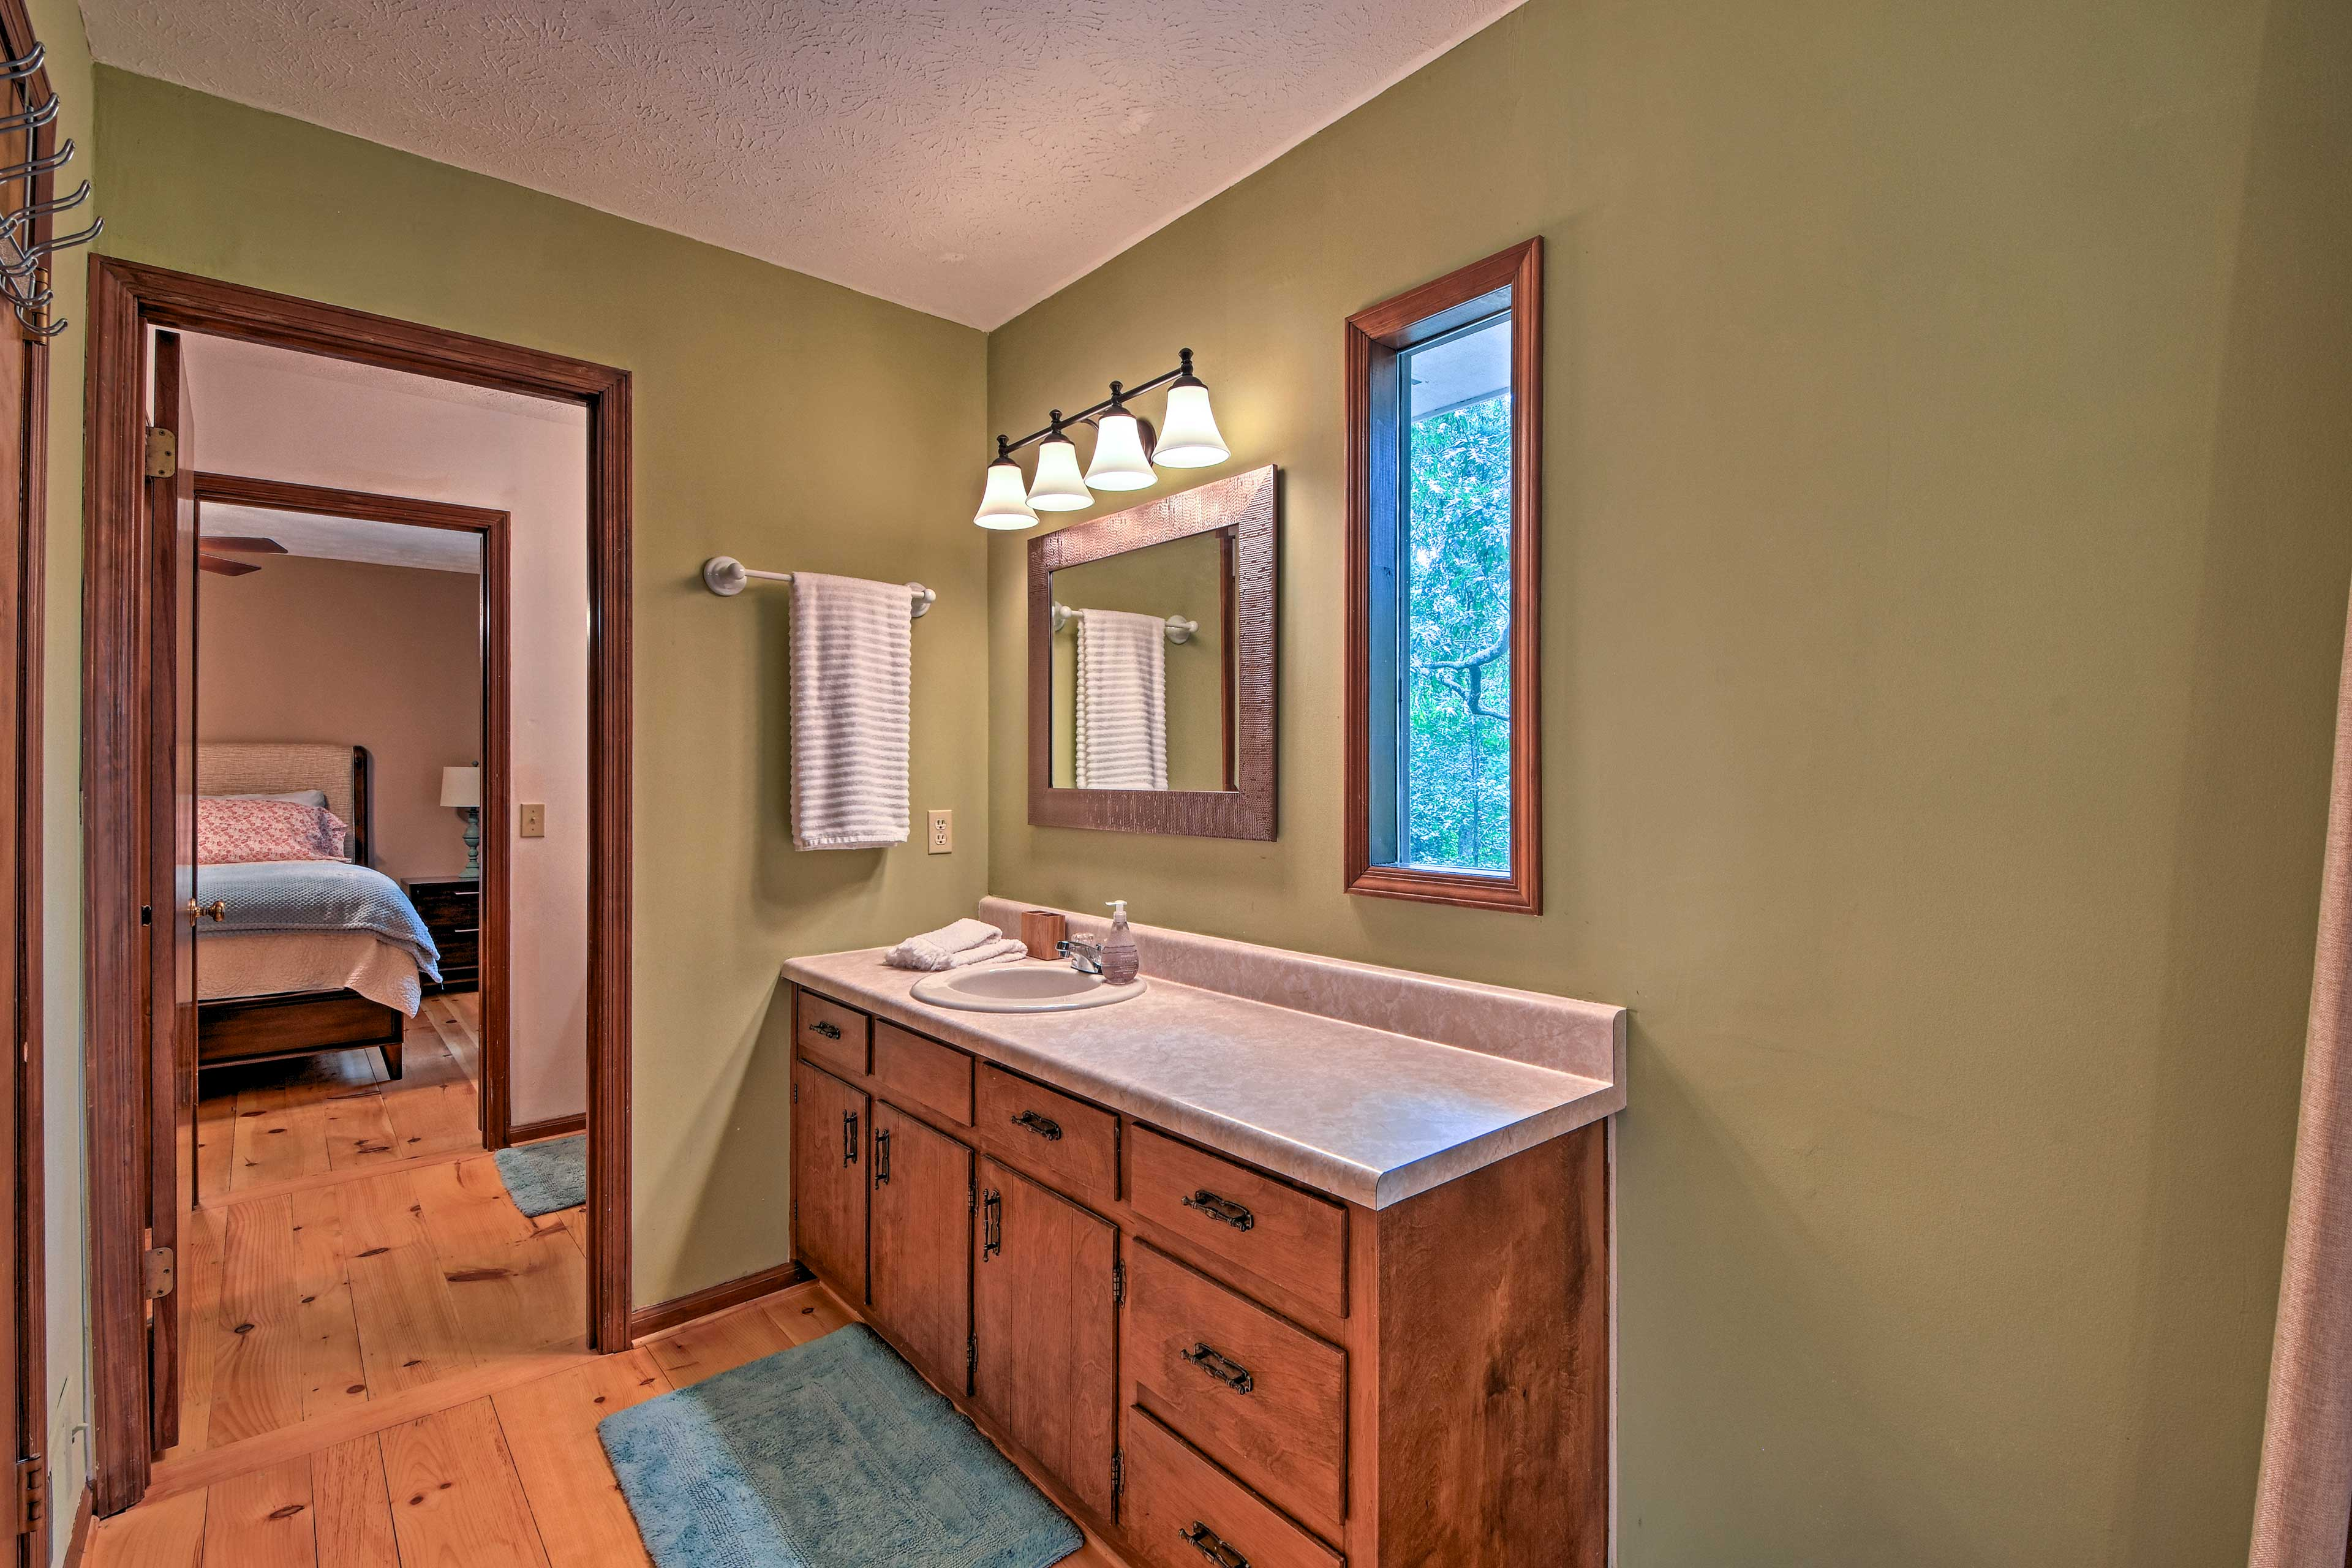 The bedroom is equipped with its own sink and vanity.